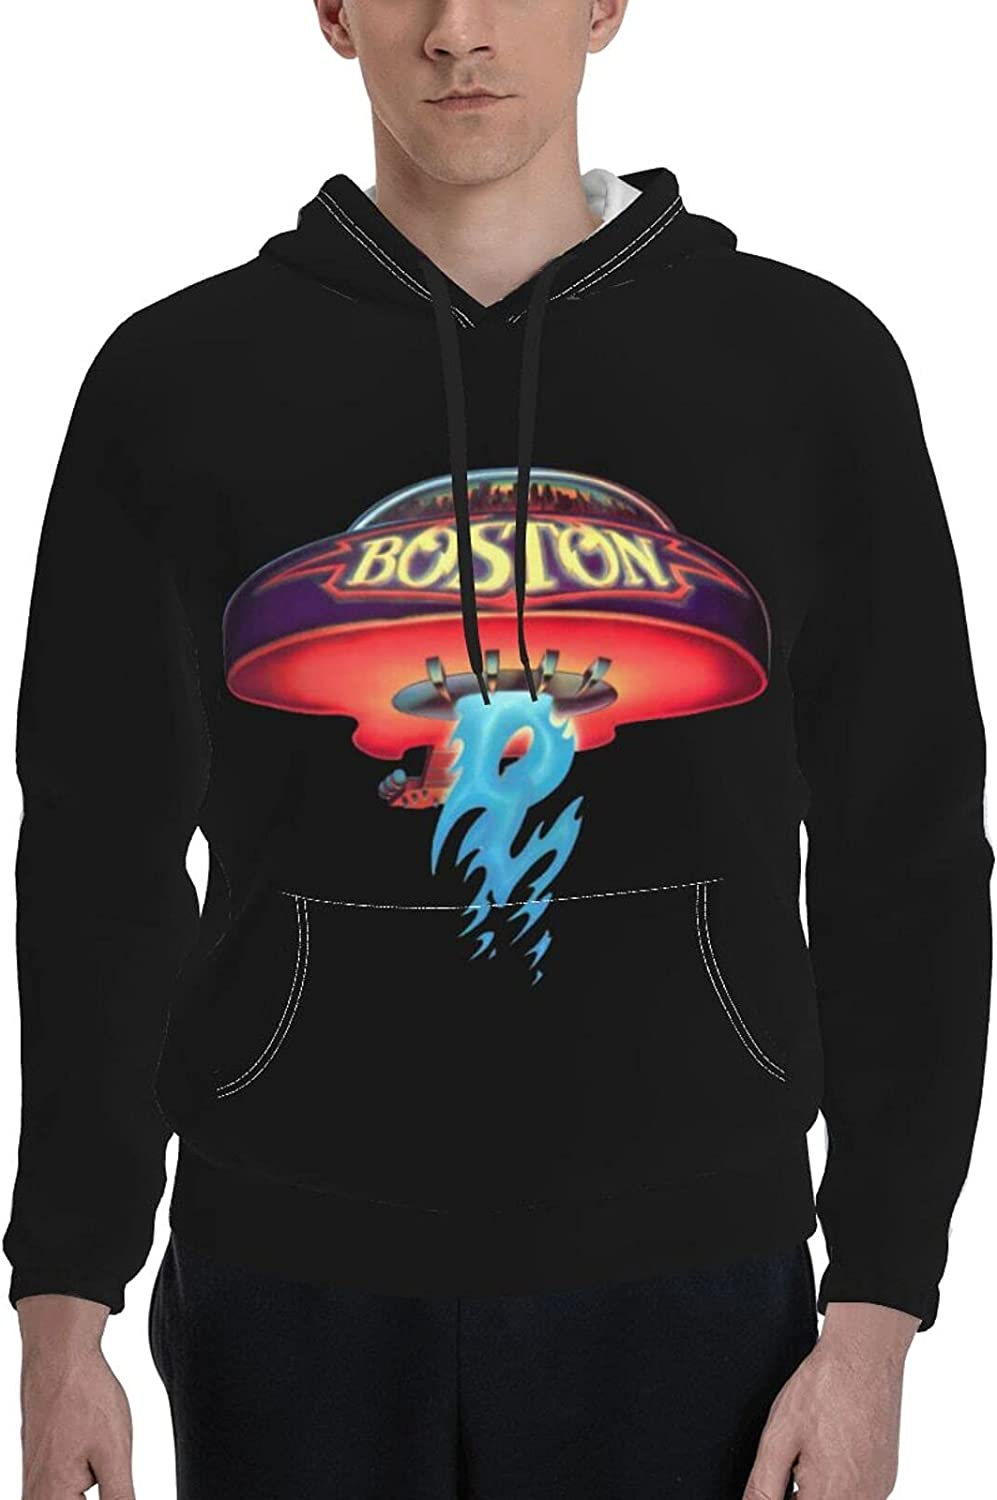 Boston Rock Band Pullover Men Fashion Our shop most popular Unisex Jacket Sleeve Super sale period limited Long